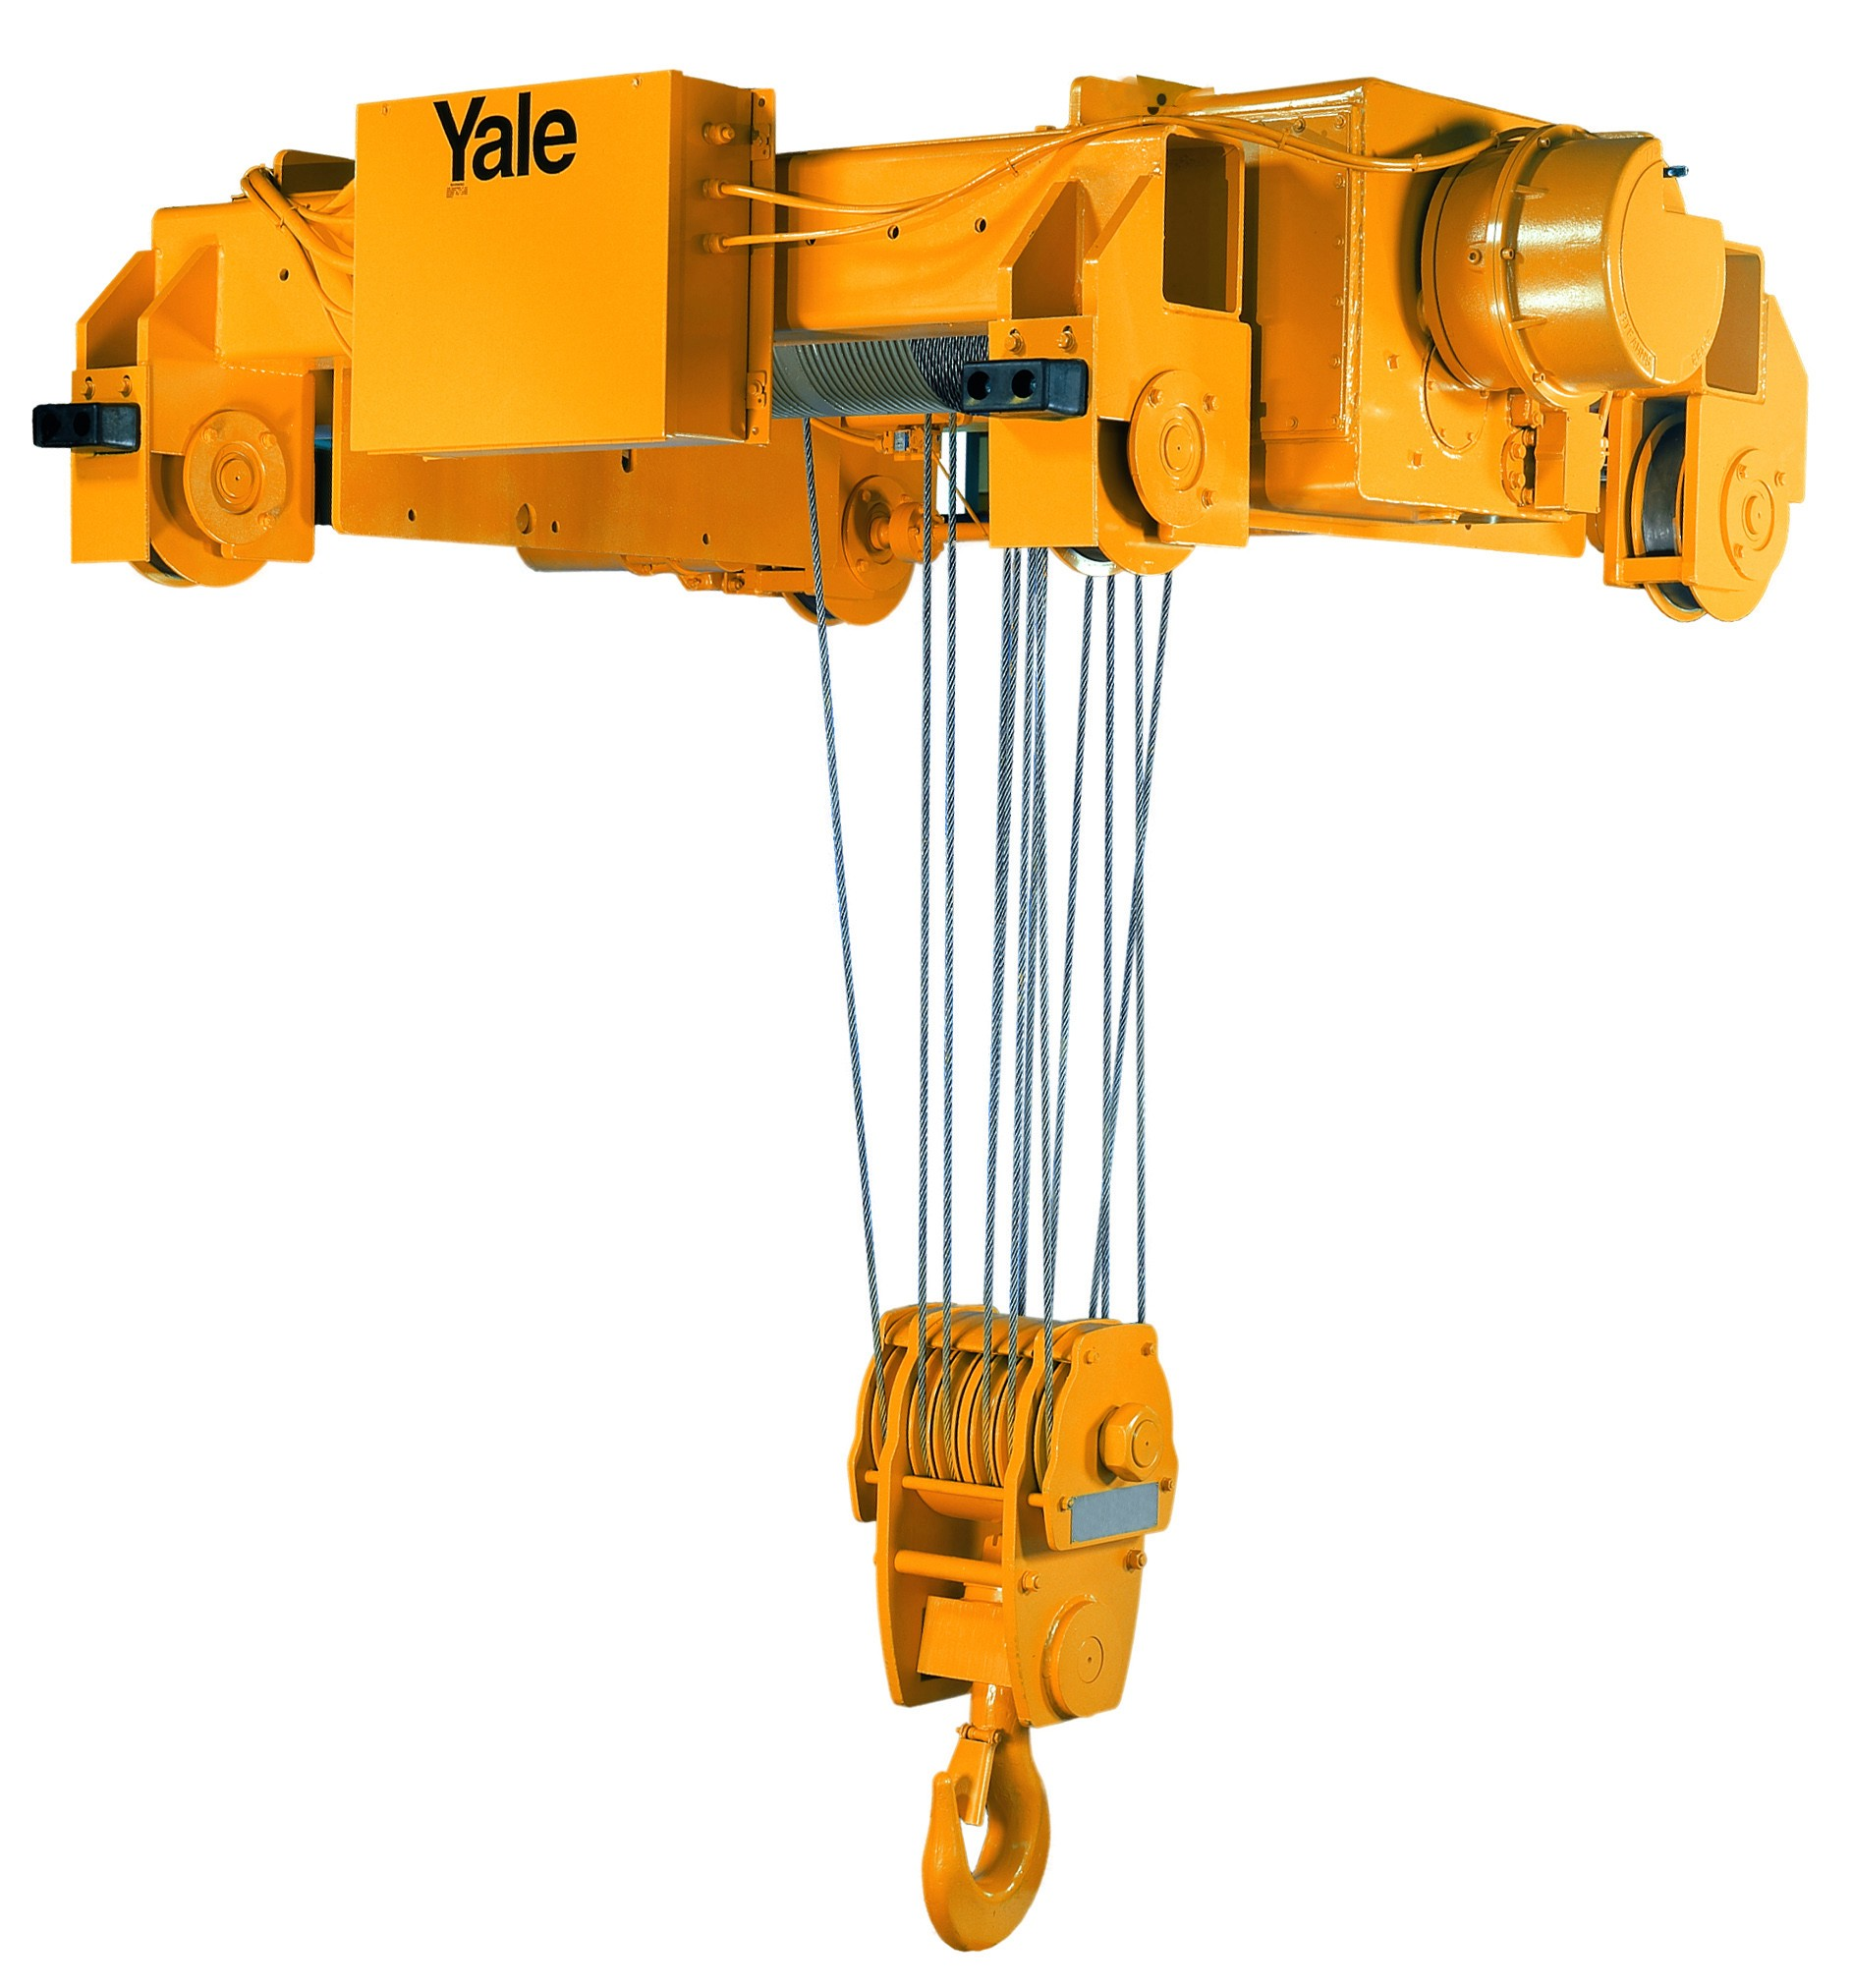 YALE - Cable King 7-1/2 Ton Electric Wire Rope Hoist (35fpm & 173' Lift Double Reeve)